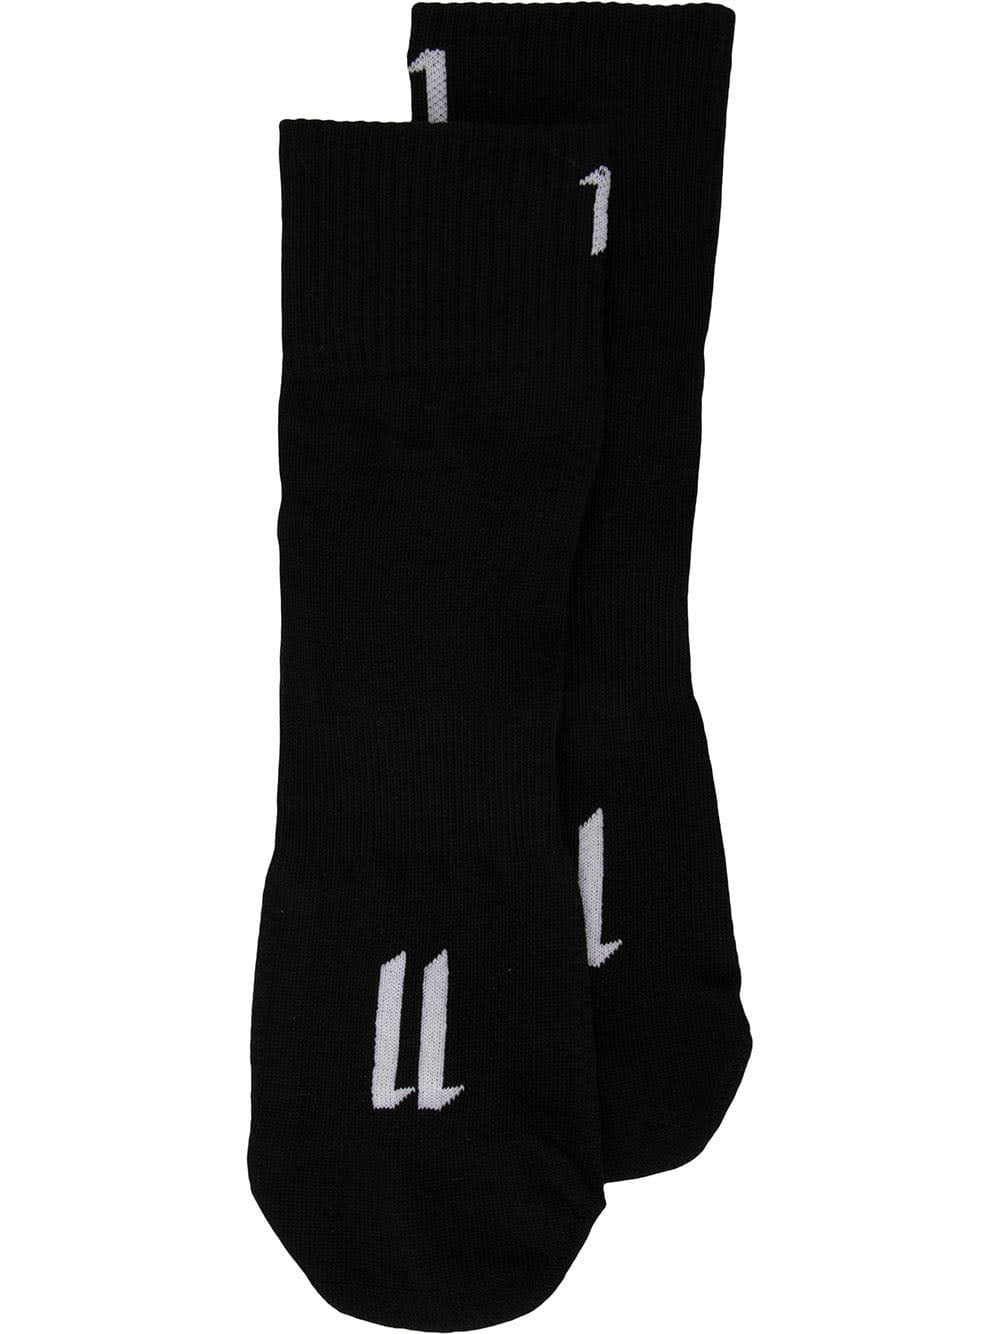 11 ANKLE SOCKS 3PACK